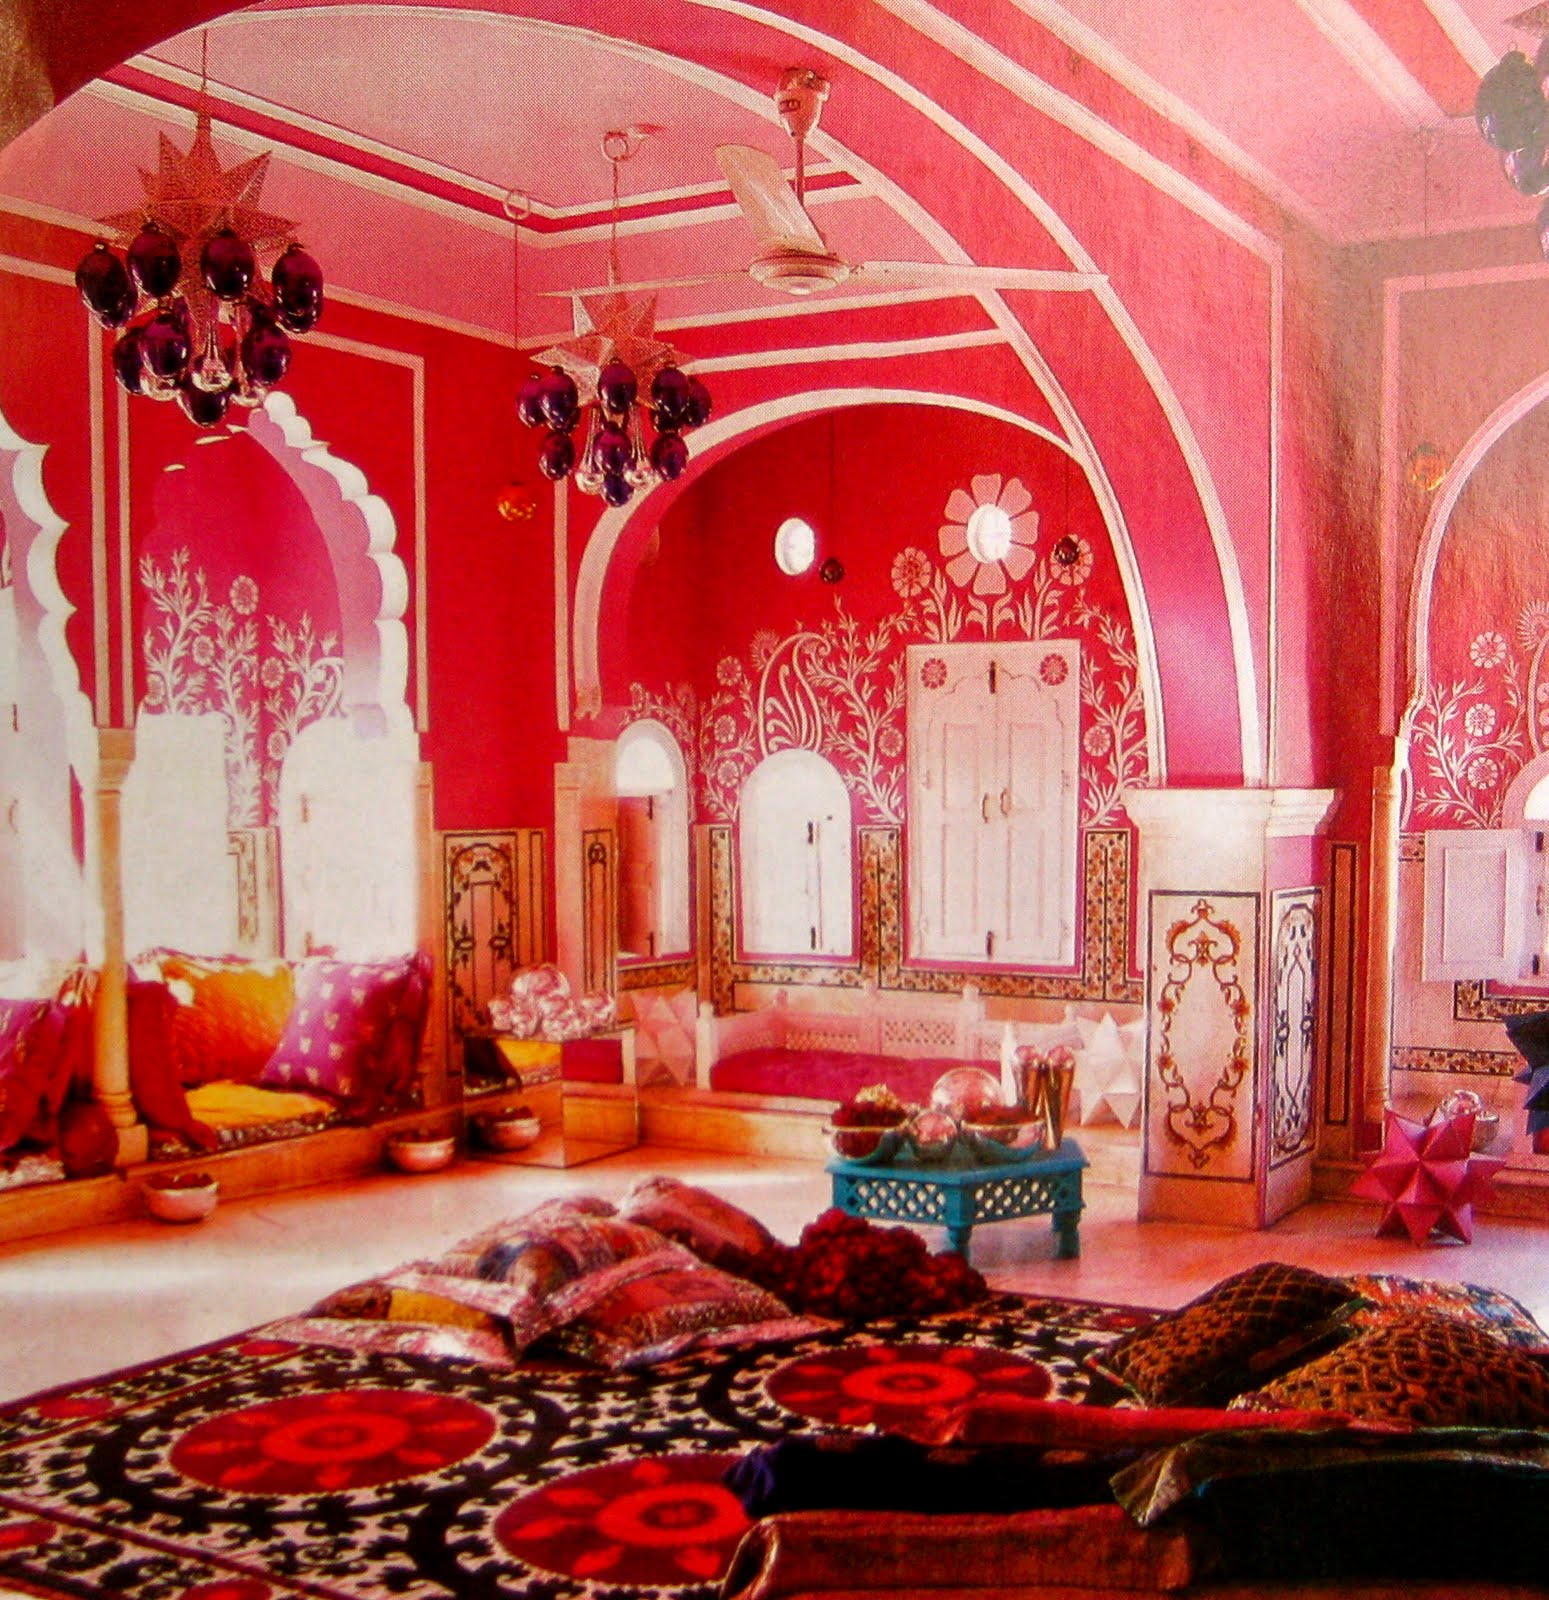 Colorful Decor of India